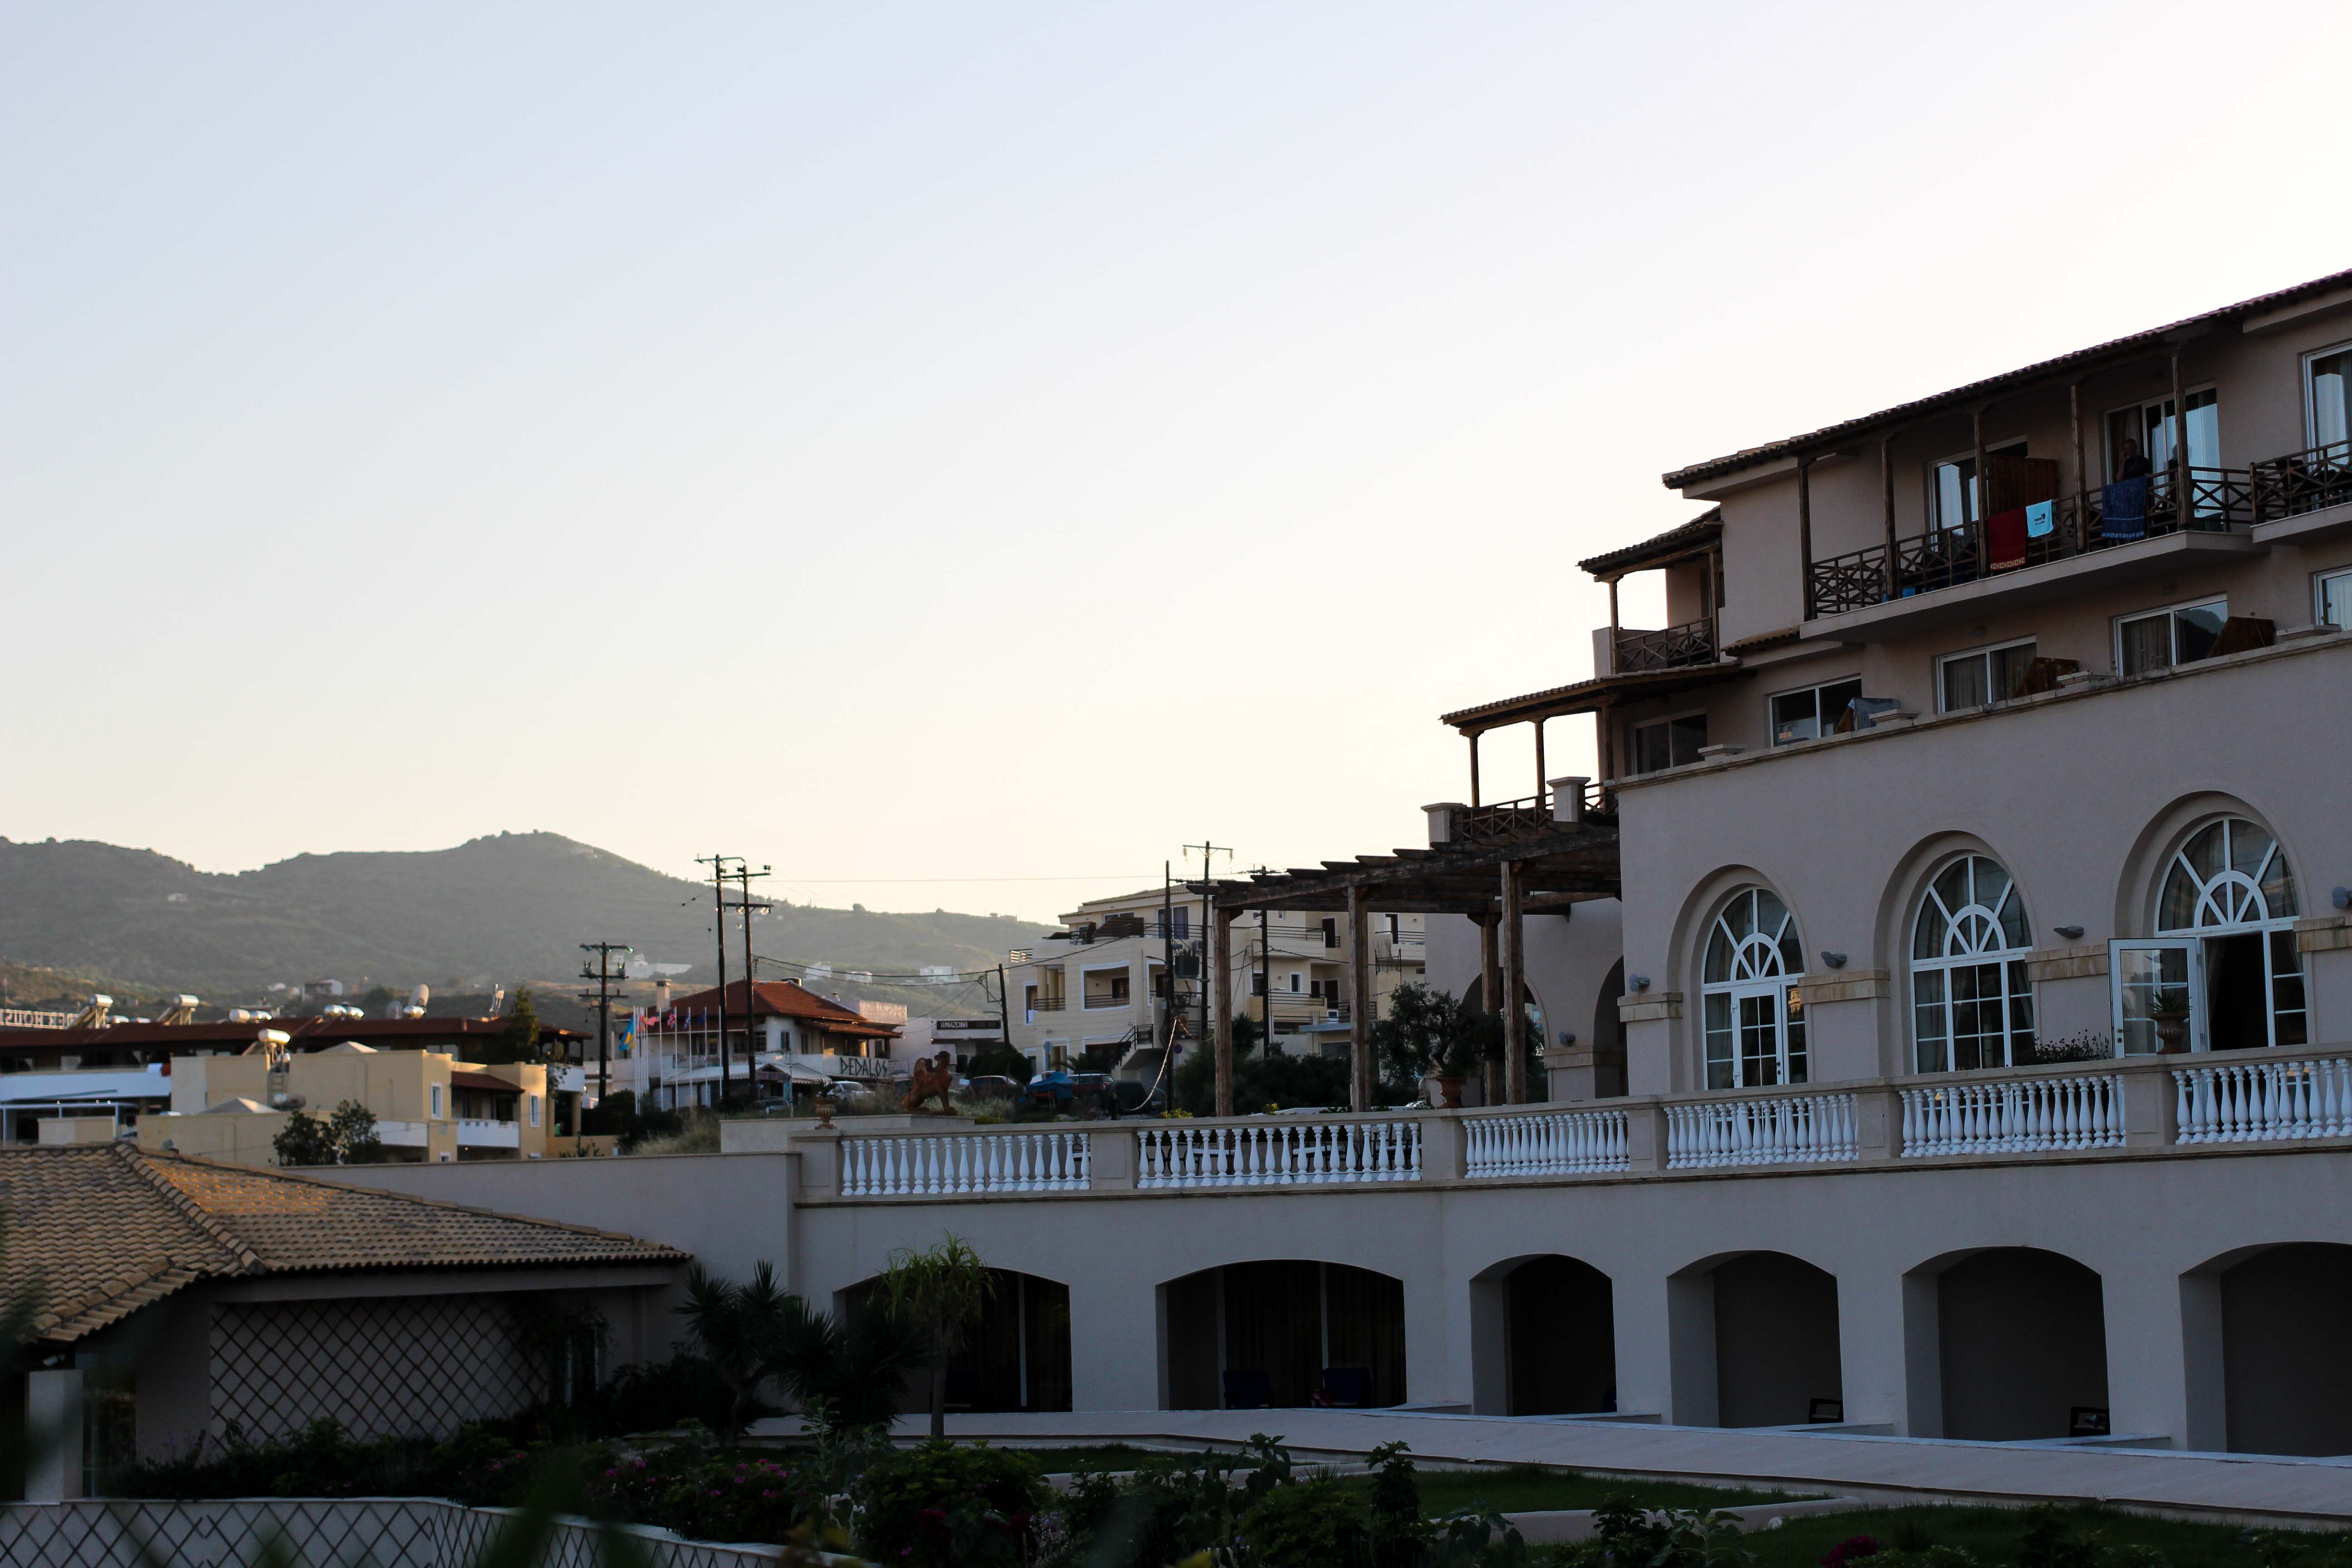 Sonnenuntergang Hotel Klippe Out of the Blue Capsis Elite Resort Luxushotel Kreta Griechenland